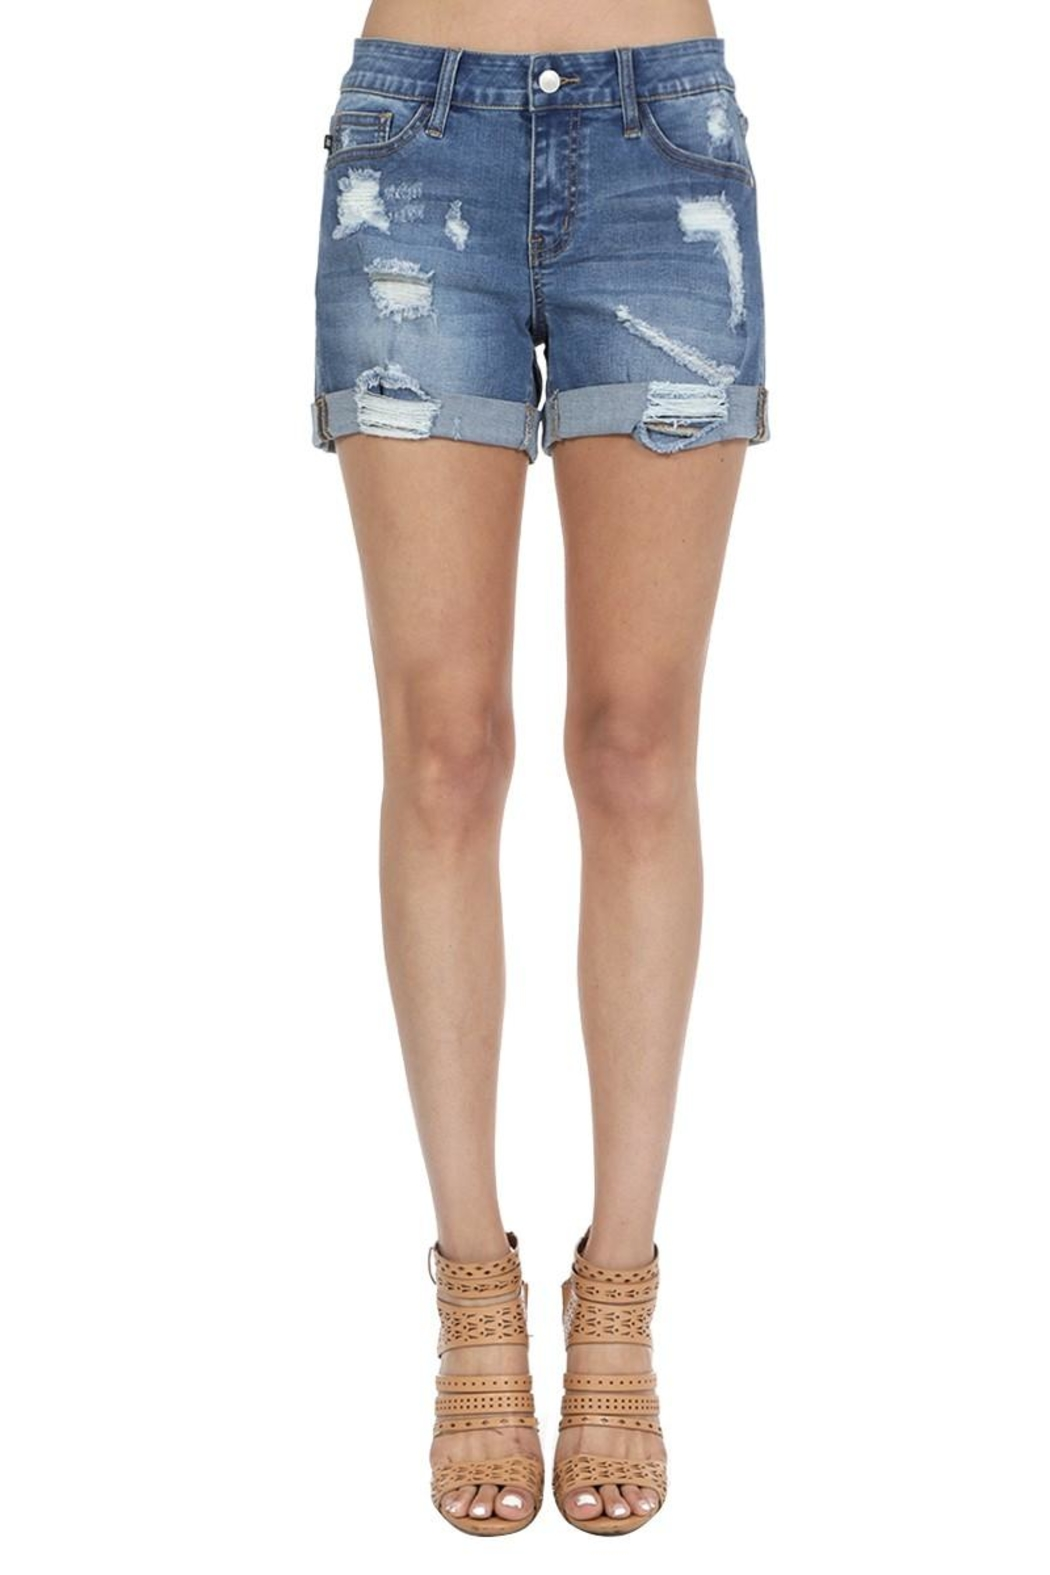 Judy Blue Destroyed Boyfriend Shorts - Front Cropped Image